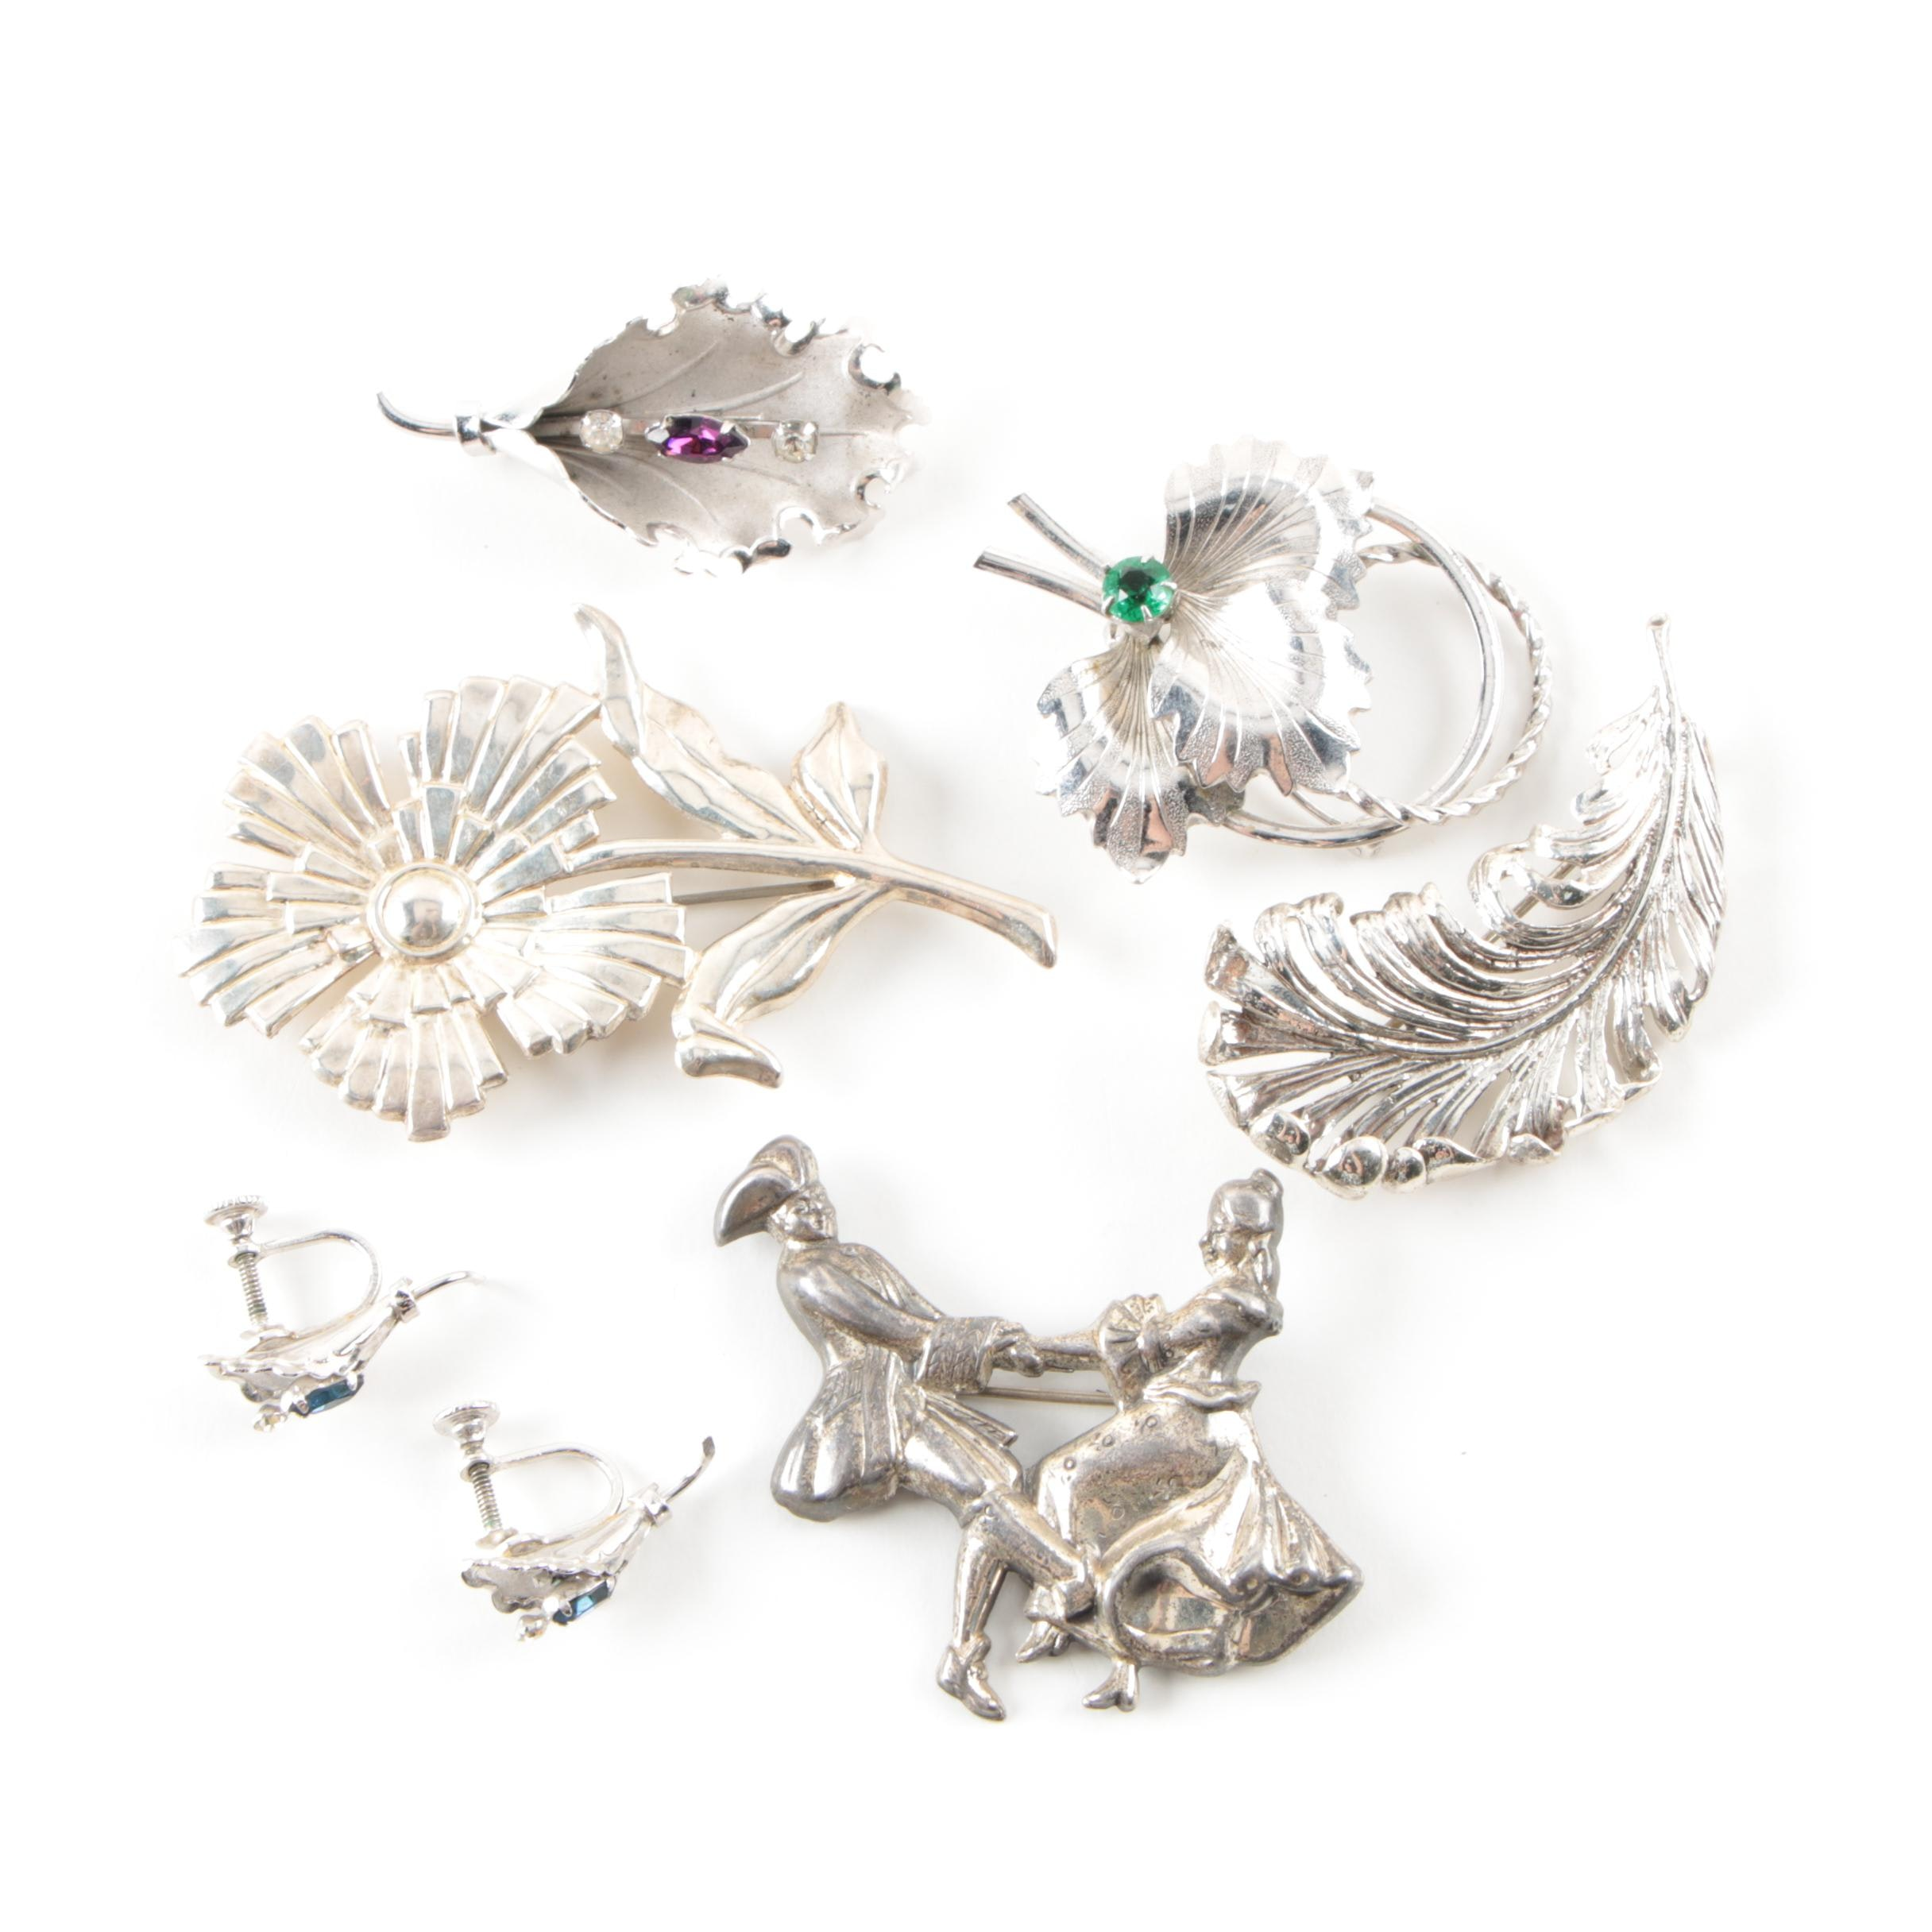 Vintage Sterling Silver Brooch and Earring Collection Including Colored Glass